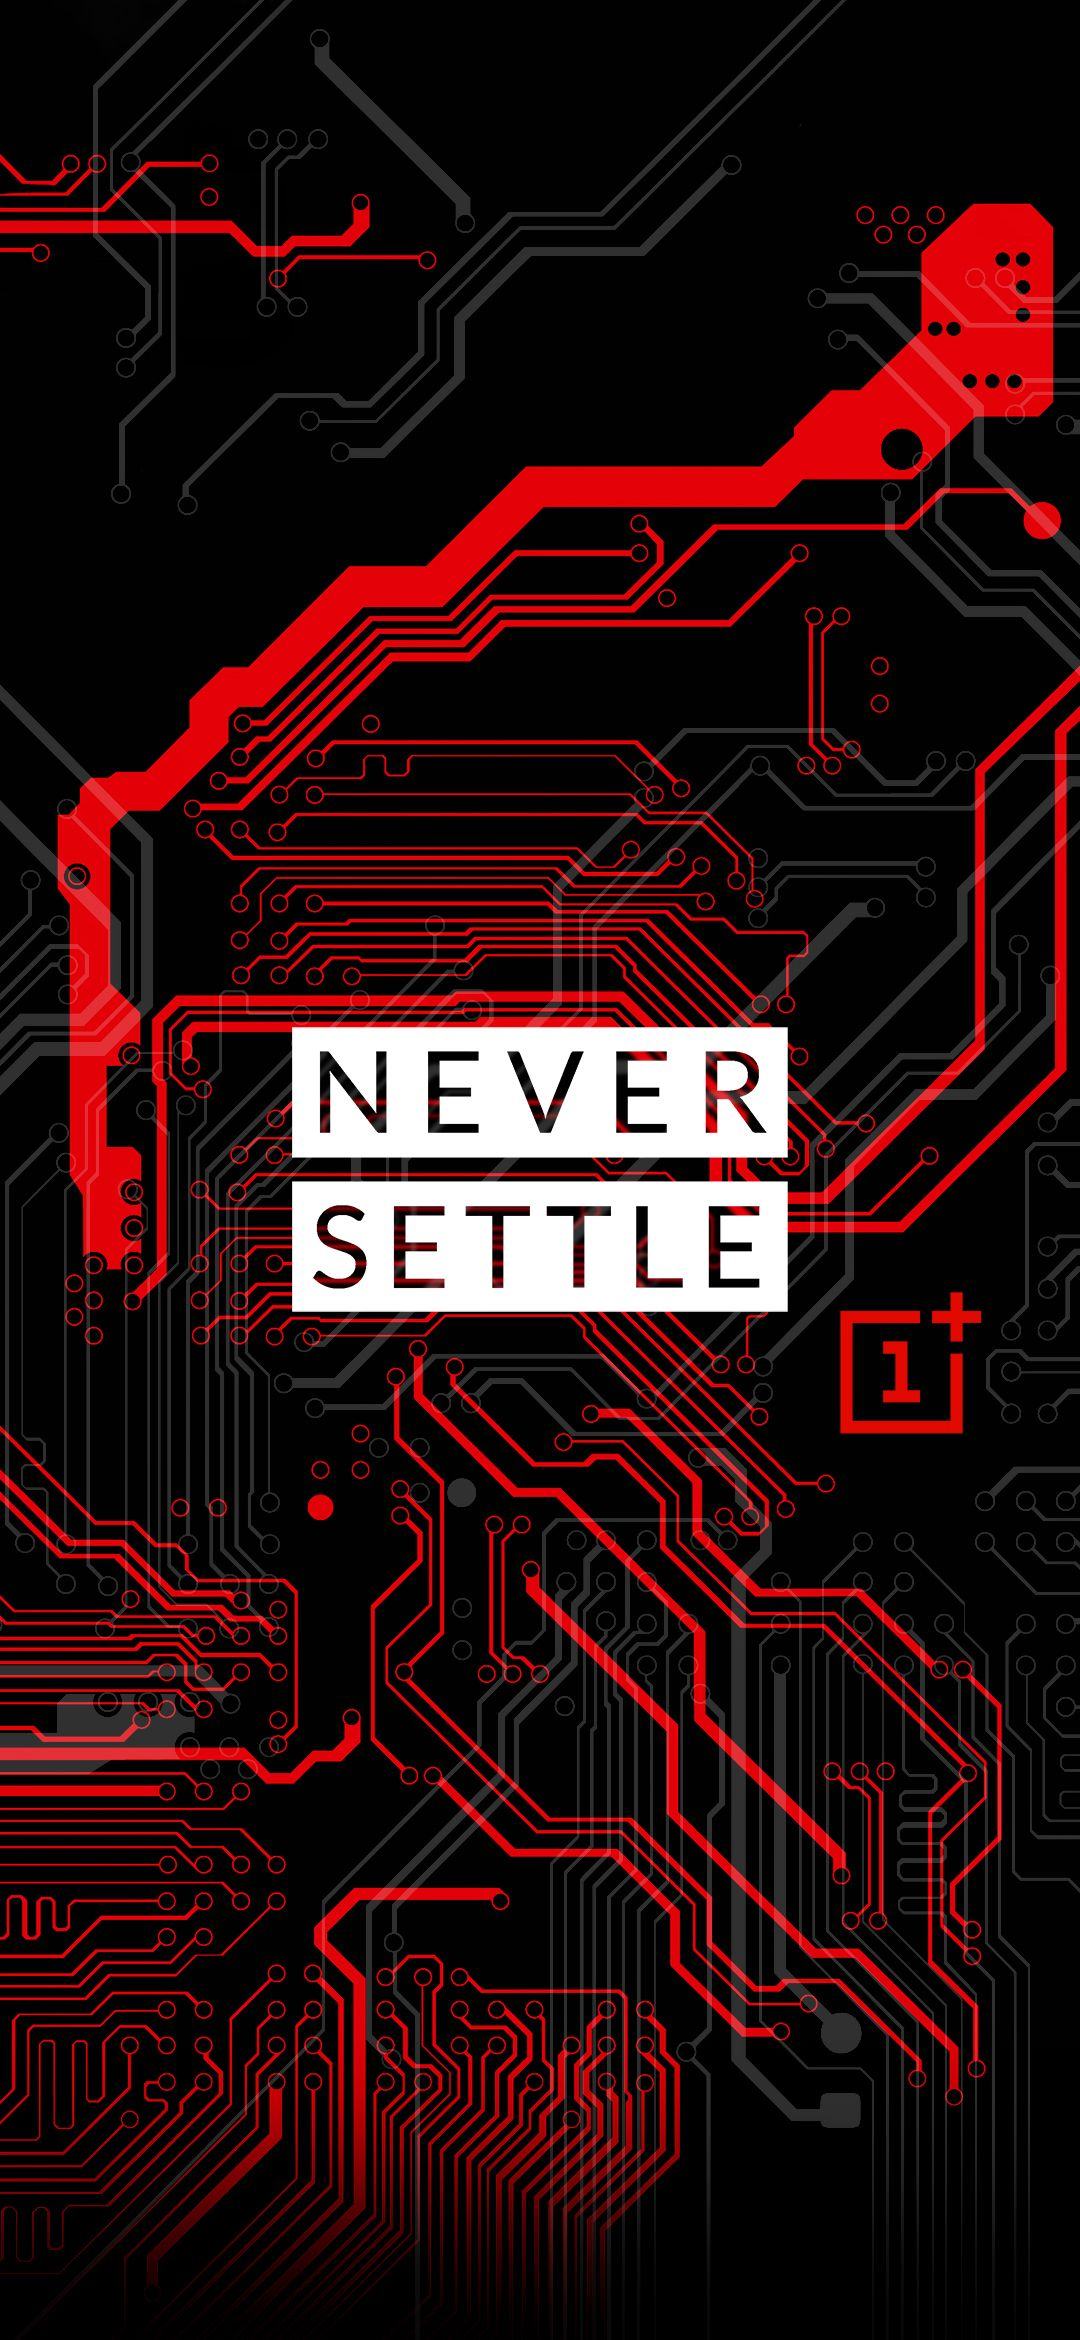 Oneplus Wallpaper NS.jpg